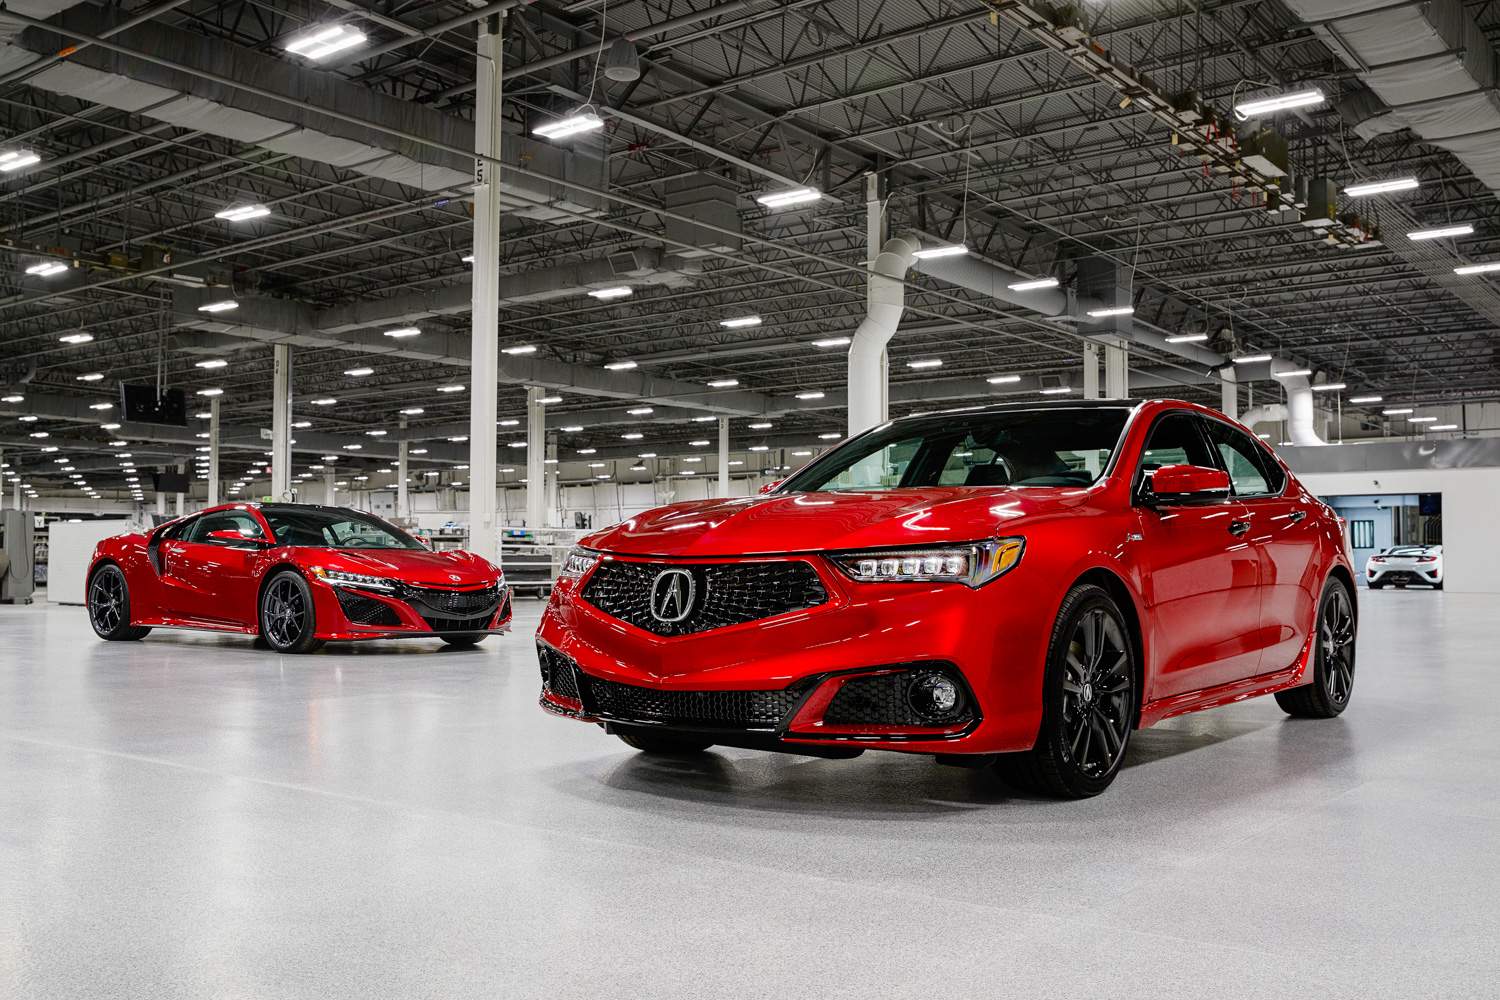 2020 Acura TLX PMC Edition with nsx